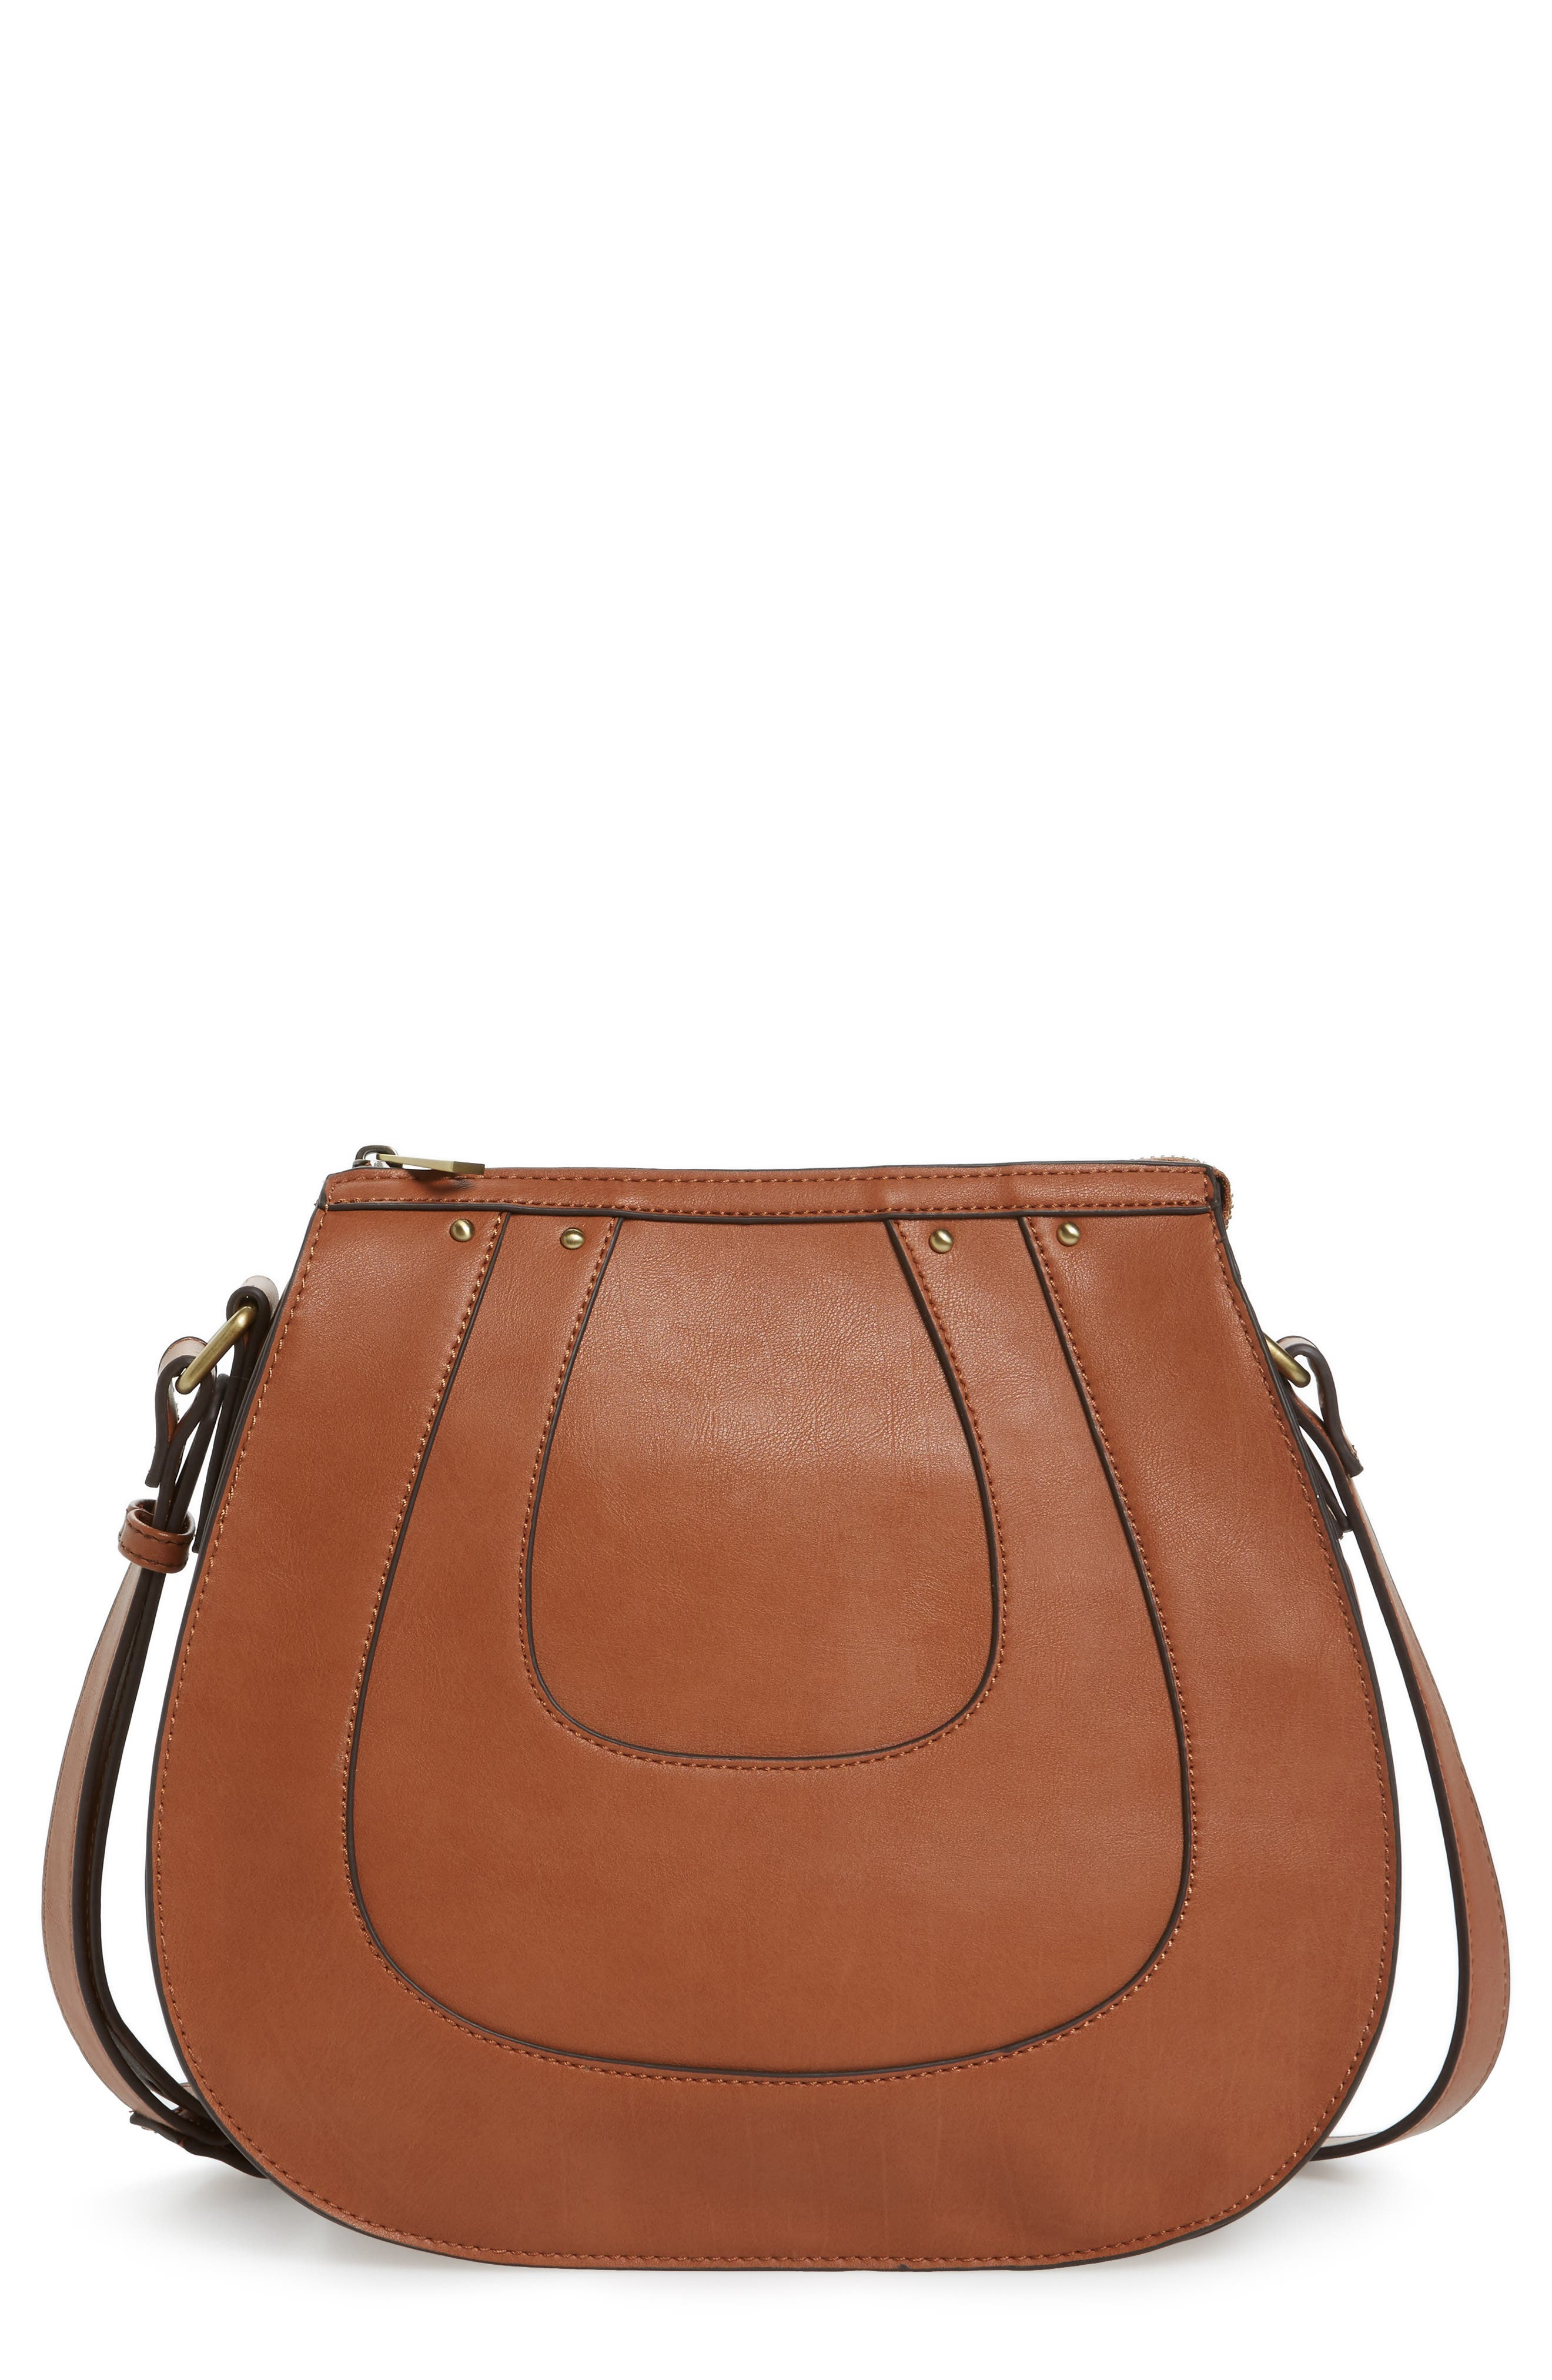 SOLE SOCIETY Korah Faux Leather Saddle Bag